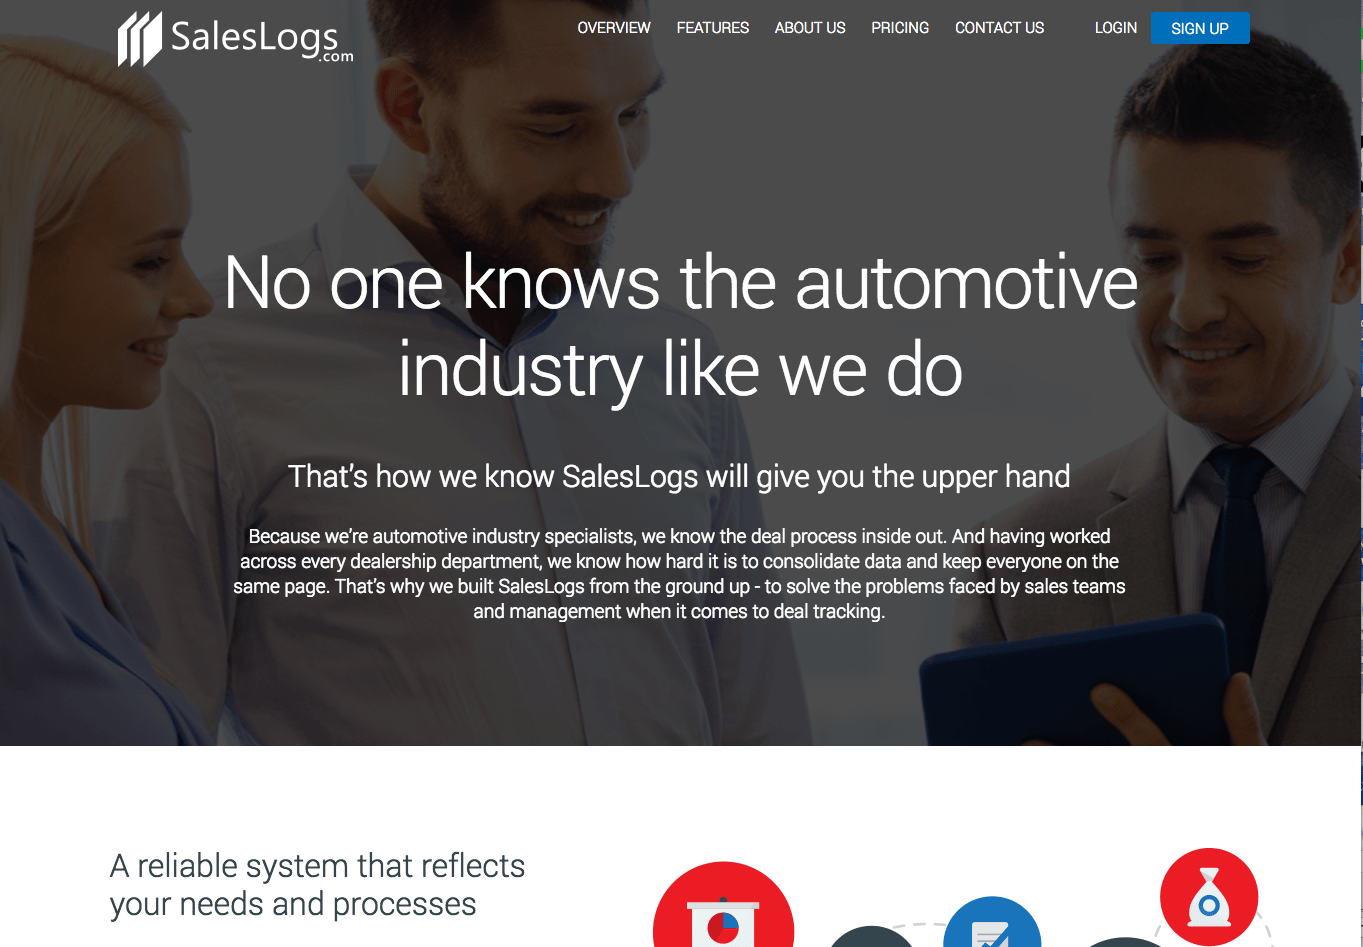 saleslogs-about-us-page-copy